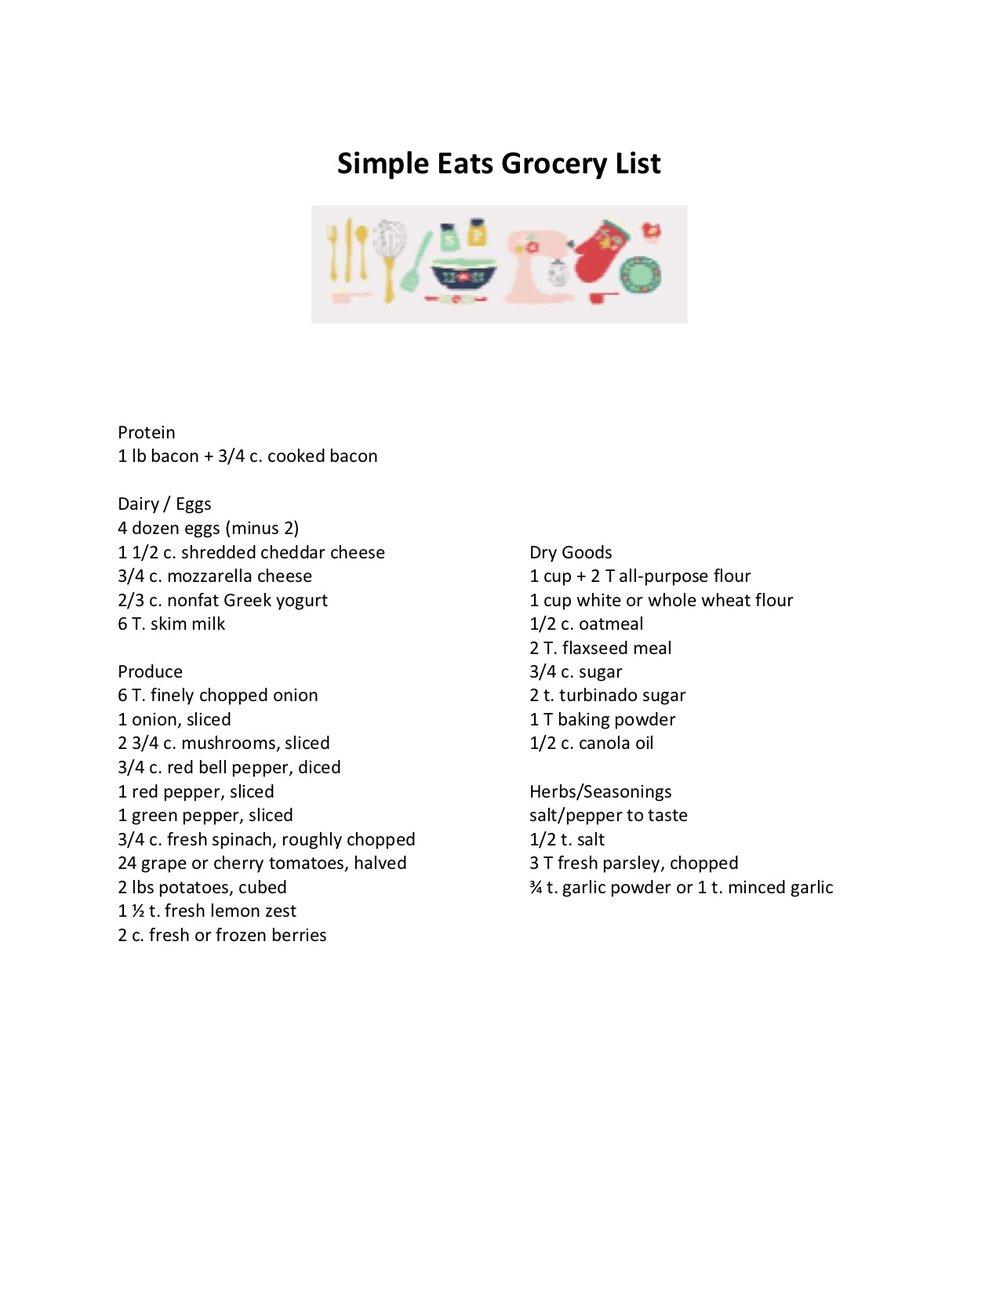 Simple Eats Grocery List 8.24 copy.jpg